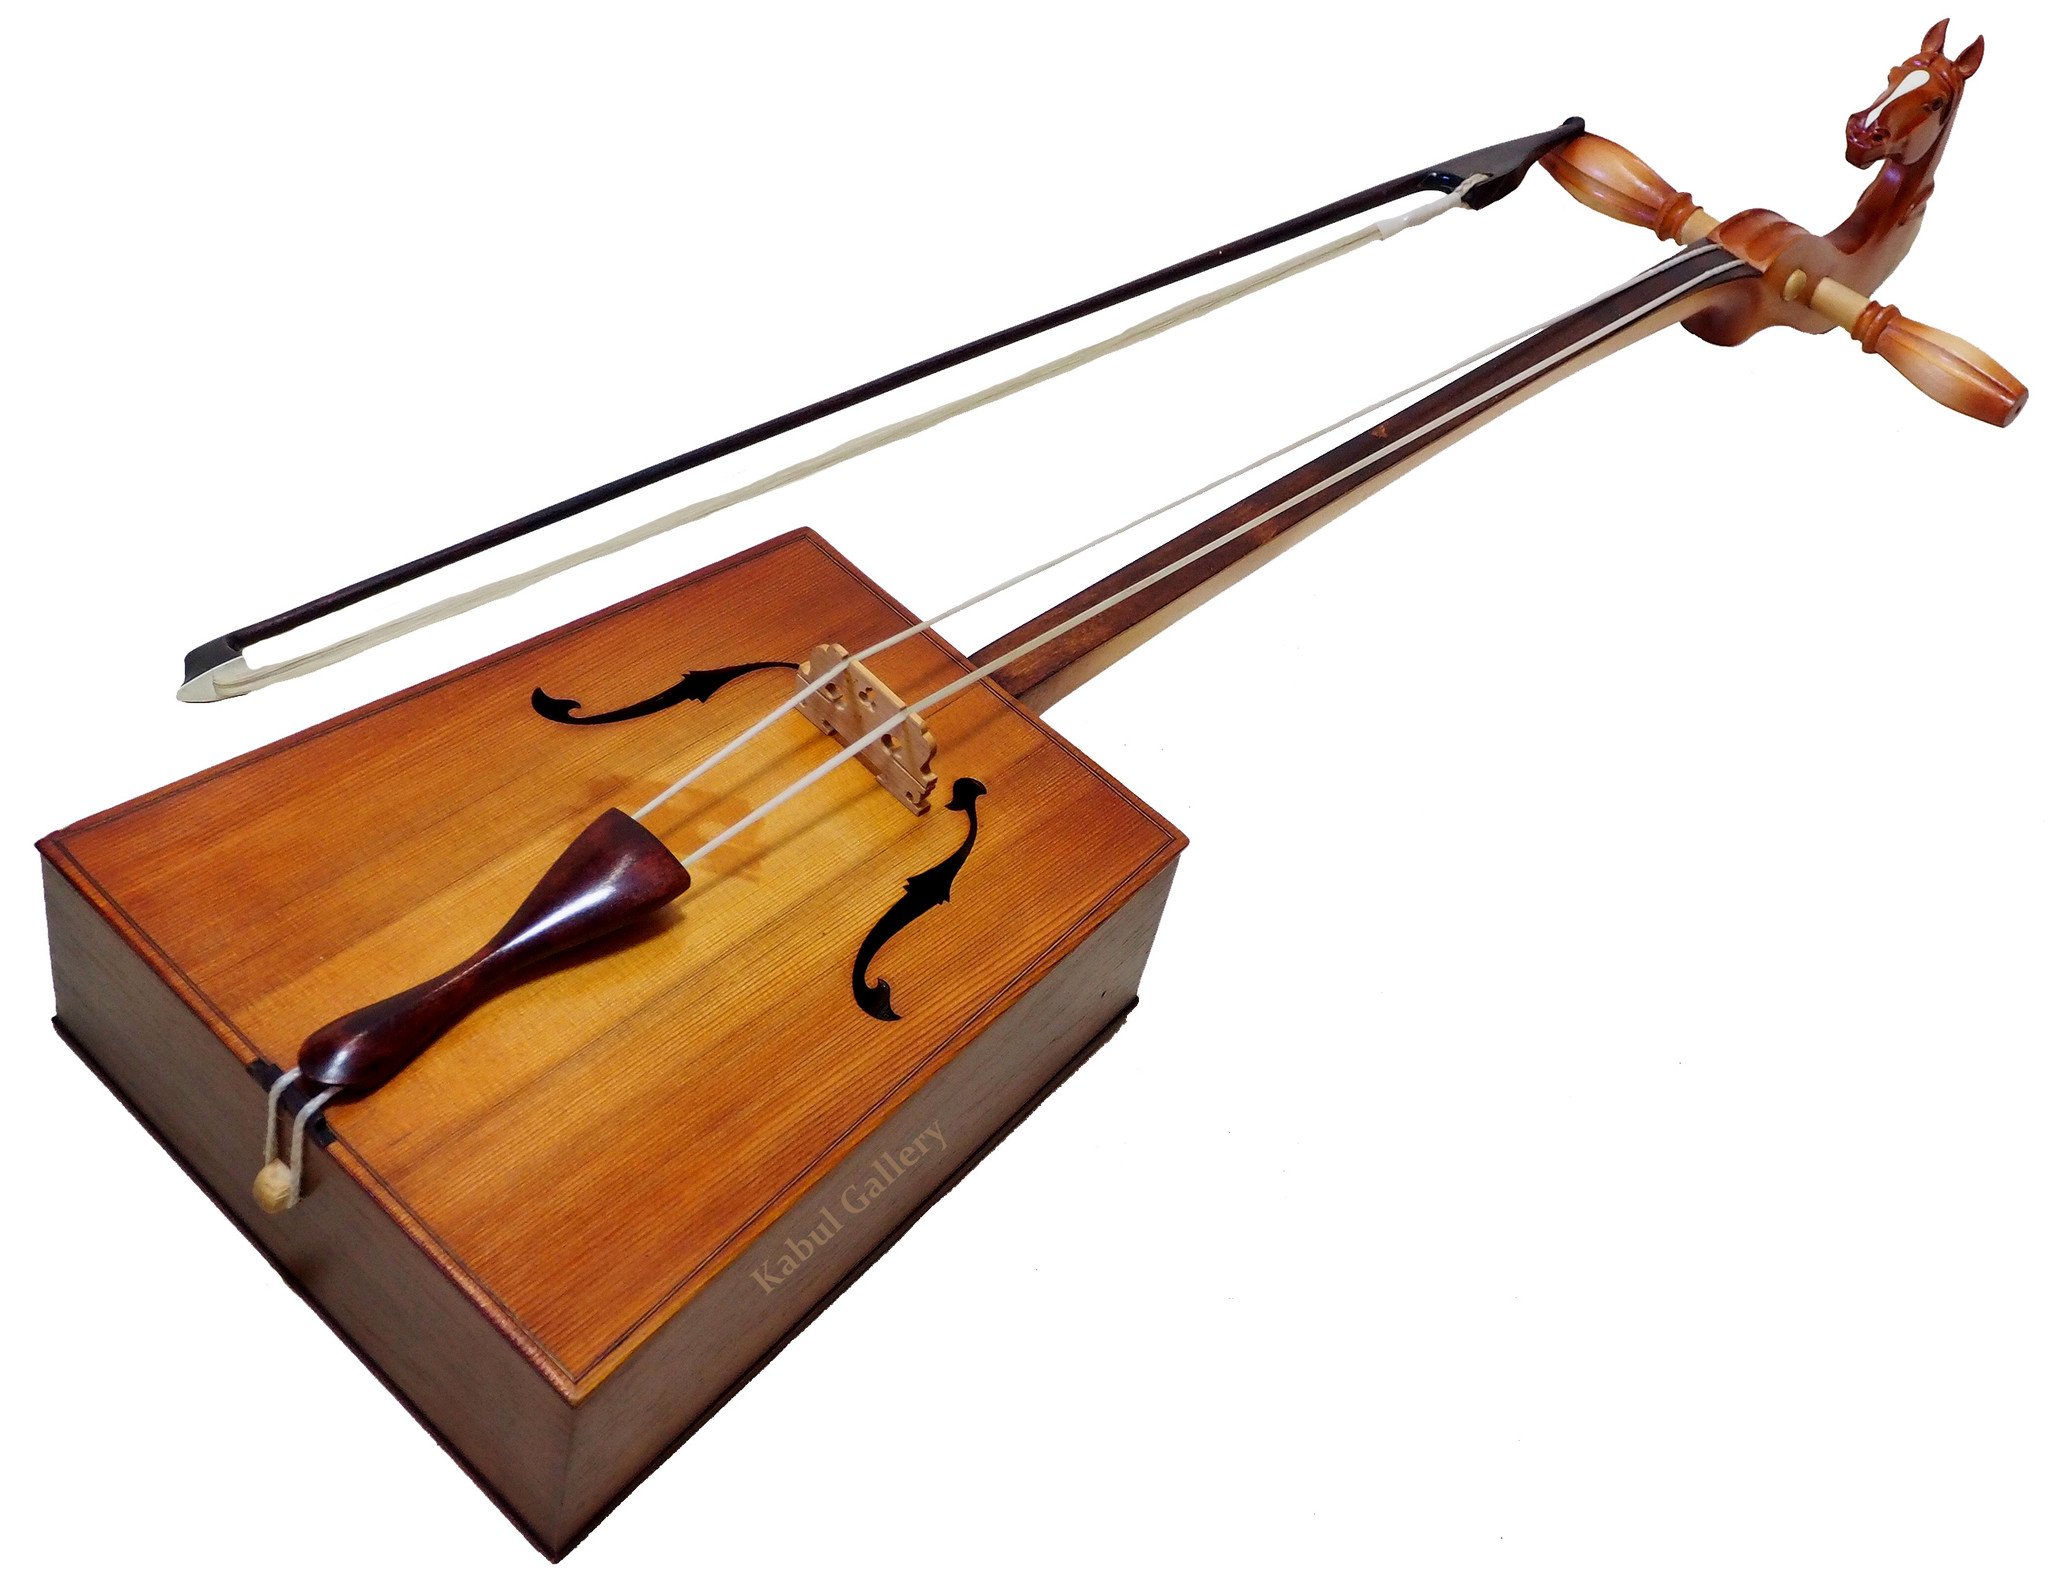 Morin khuur horsehead fiddle traditional folk musical instrument  from  Mongolian